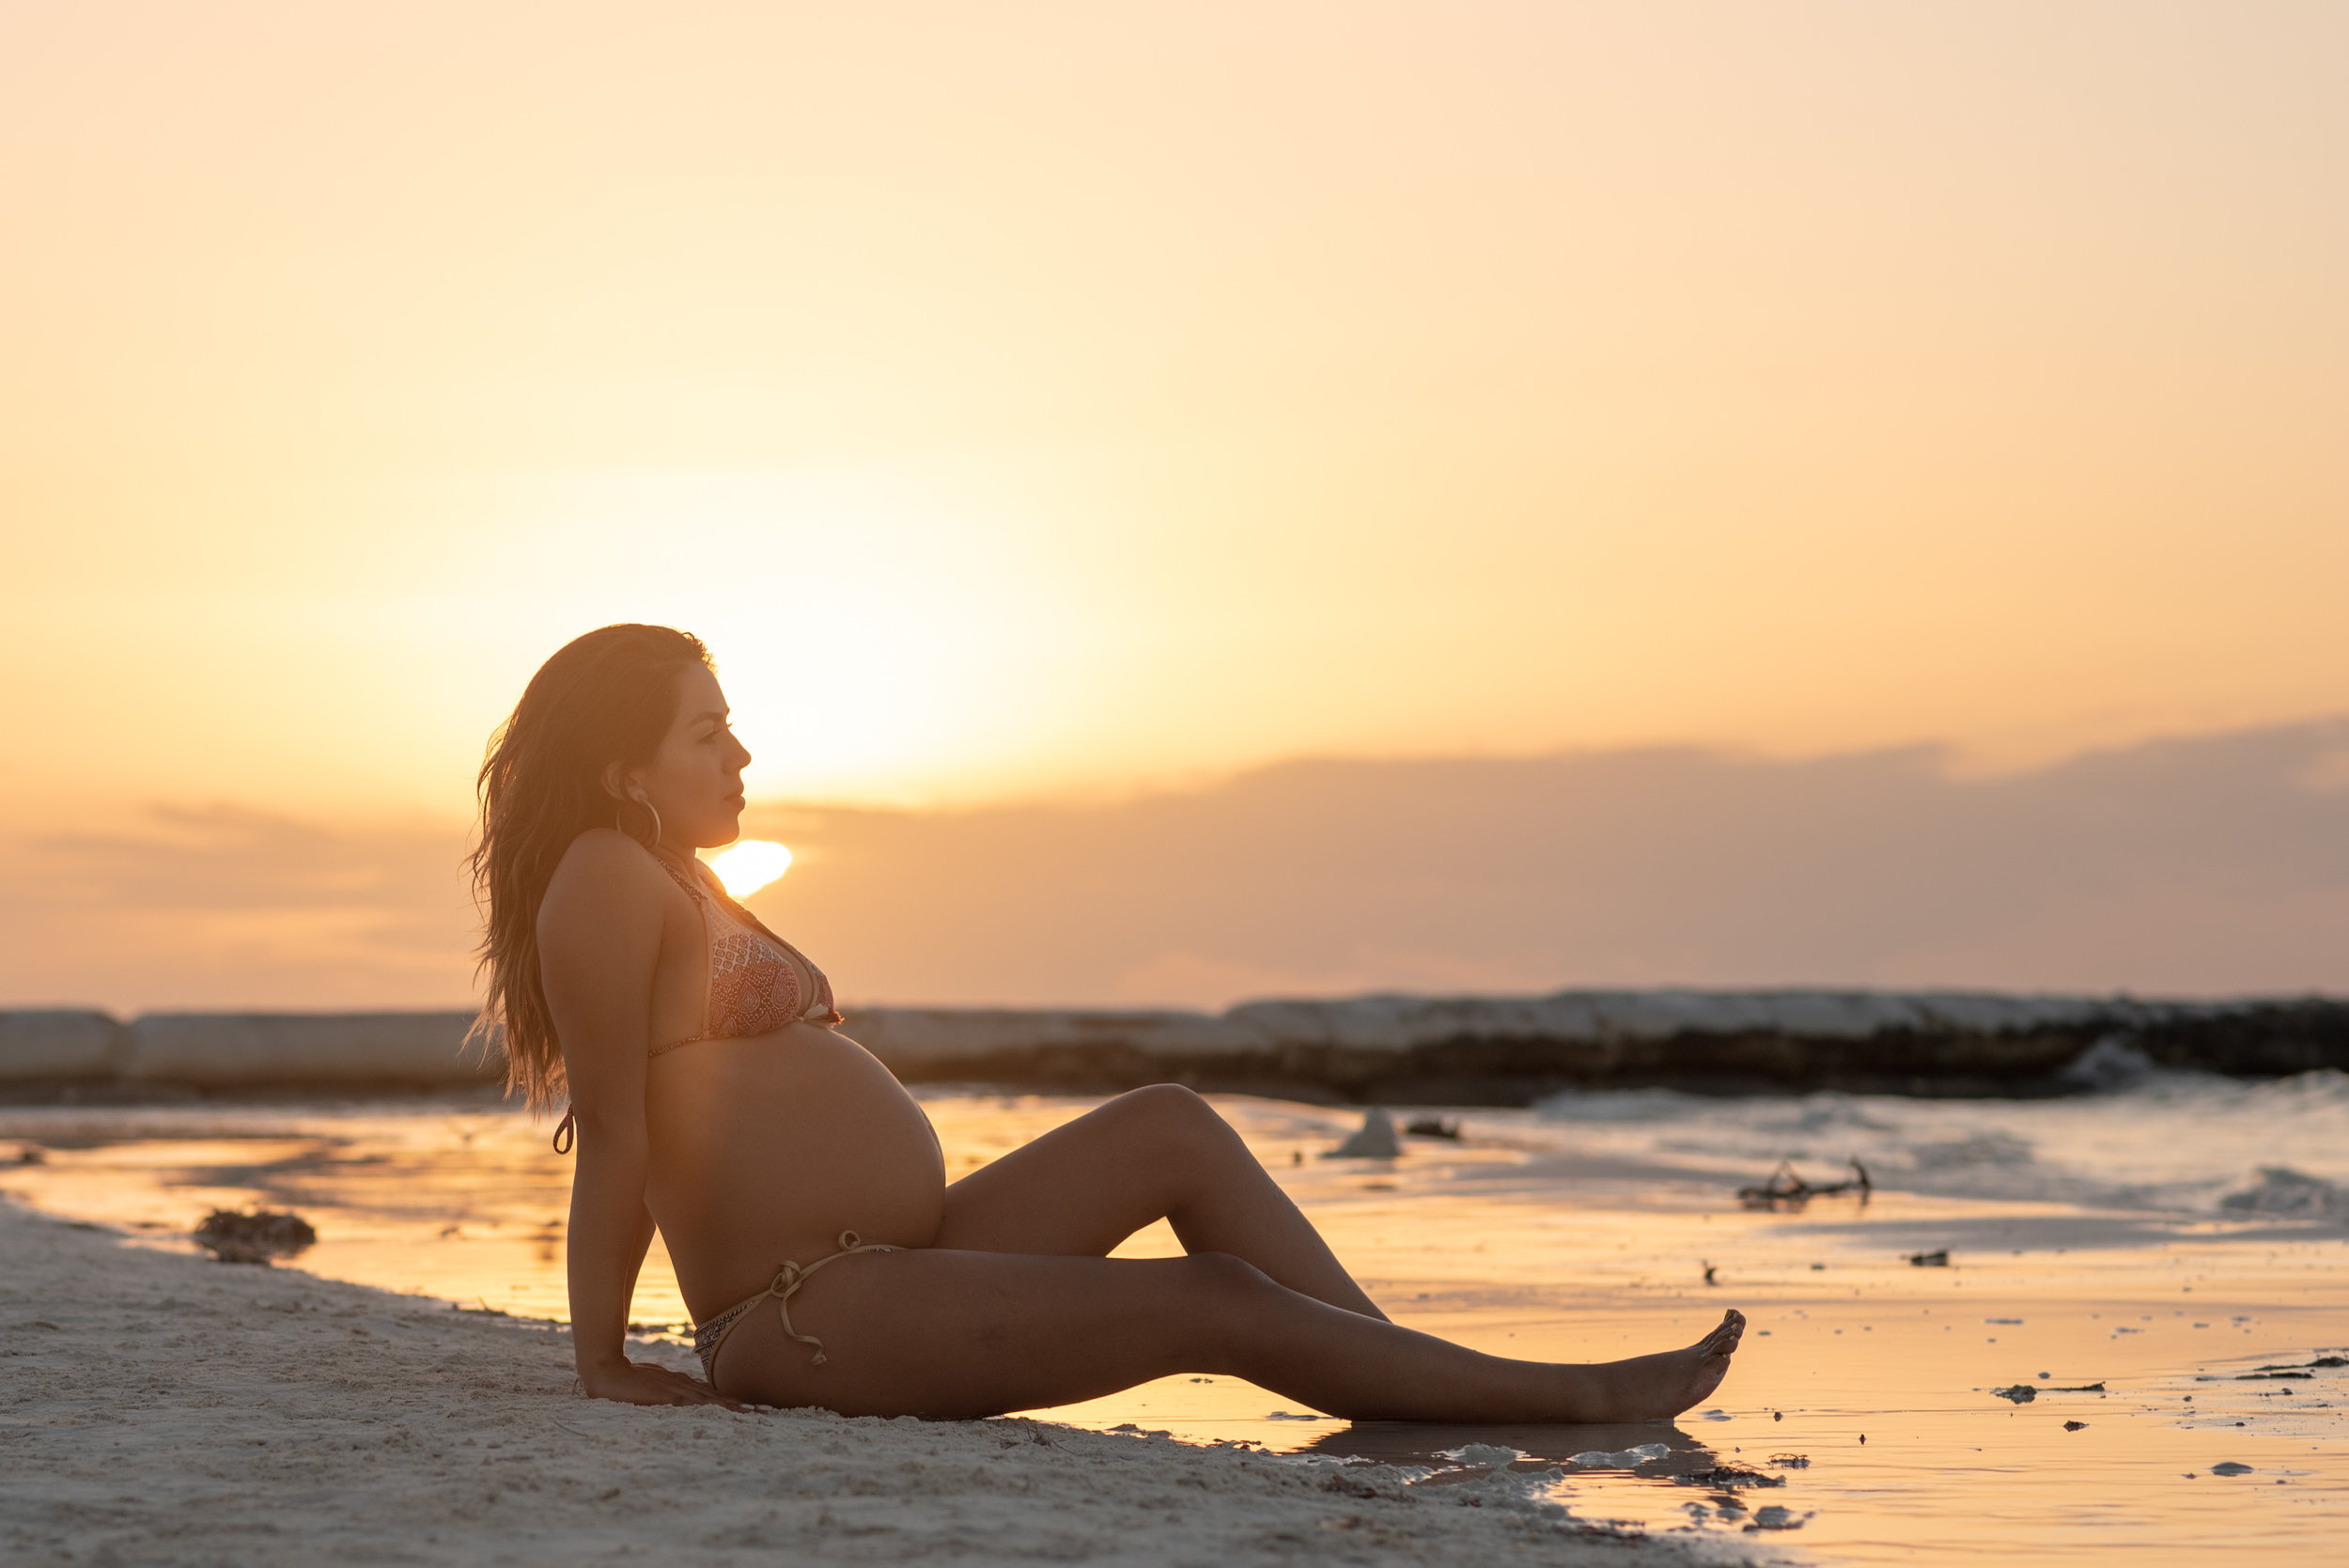 enjoying the pregnancy on the beach at sunset hour